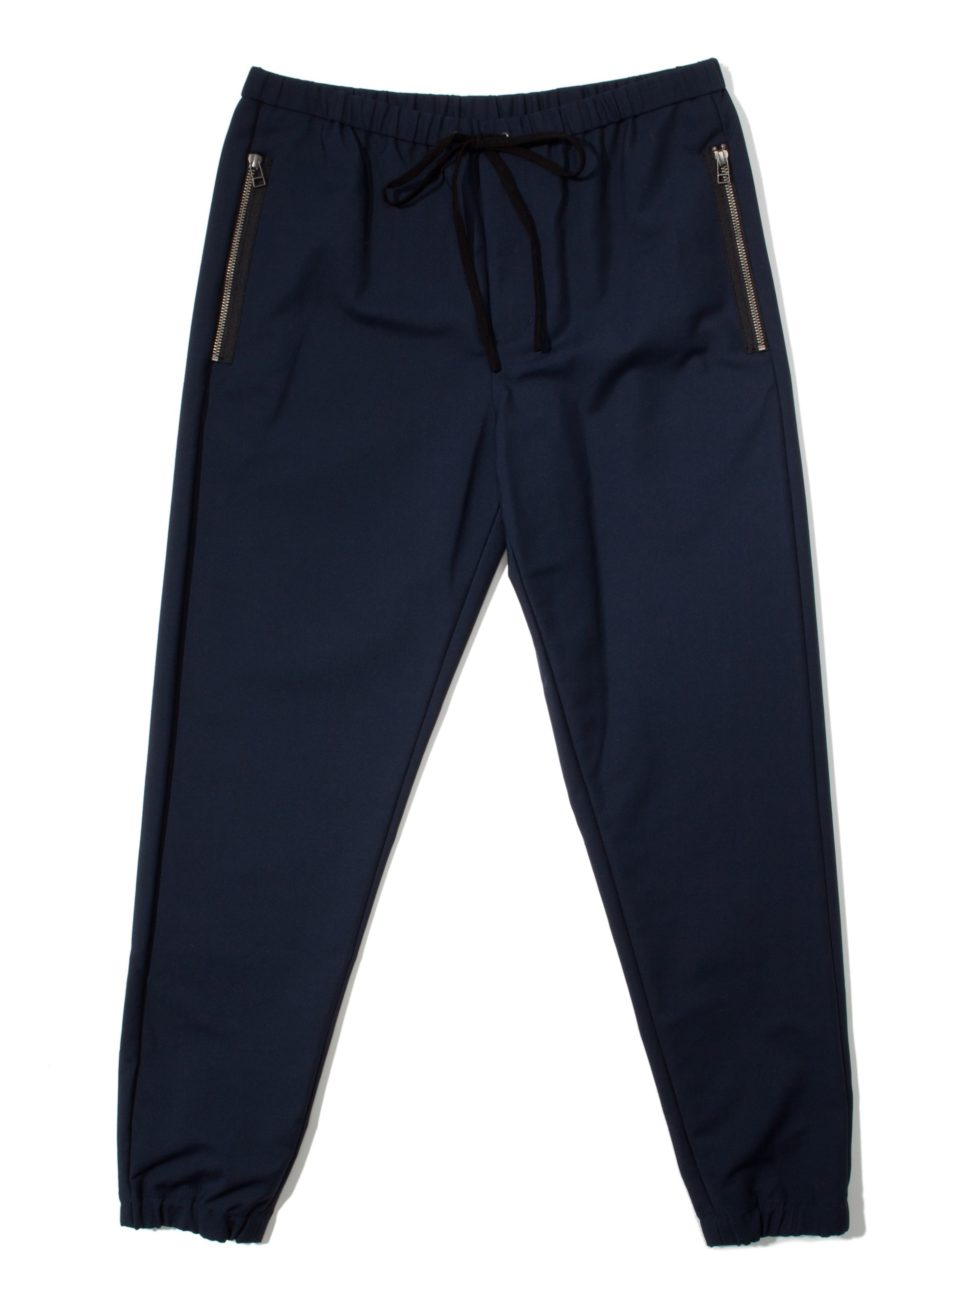 3.1 Phillip Lim Side Zipper Utility Pant